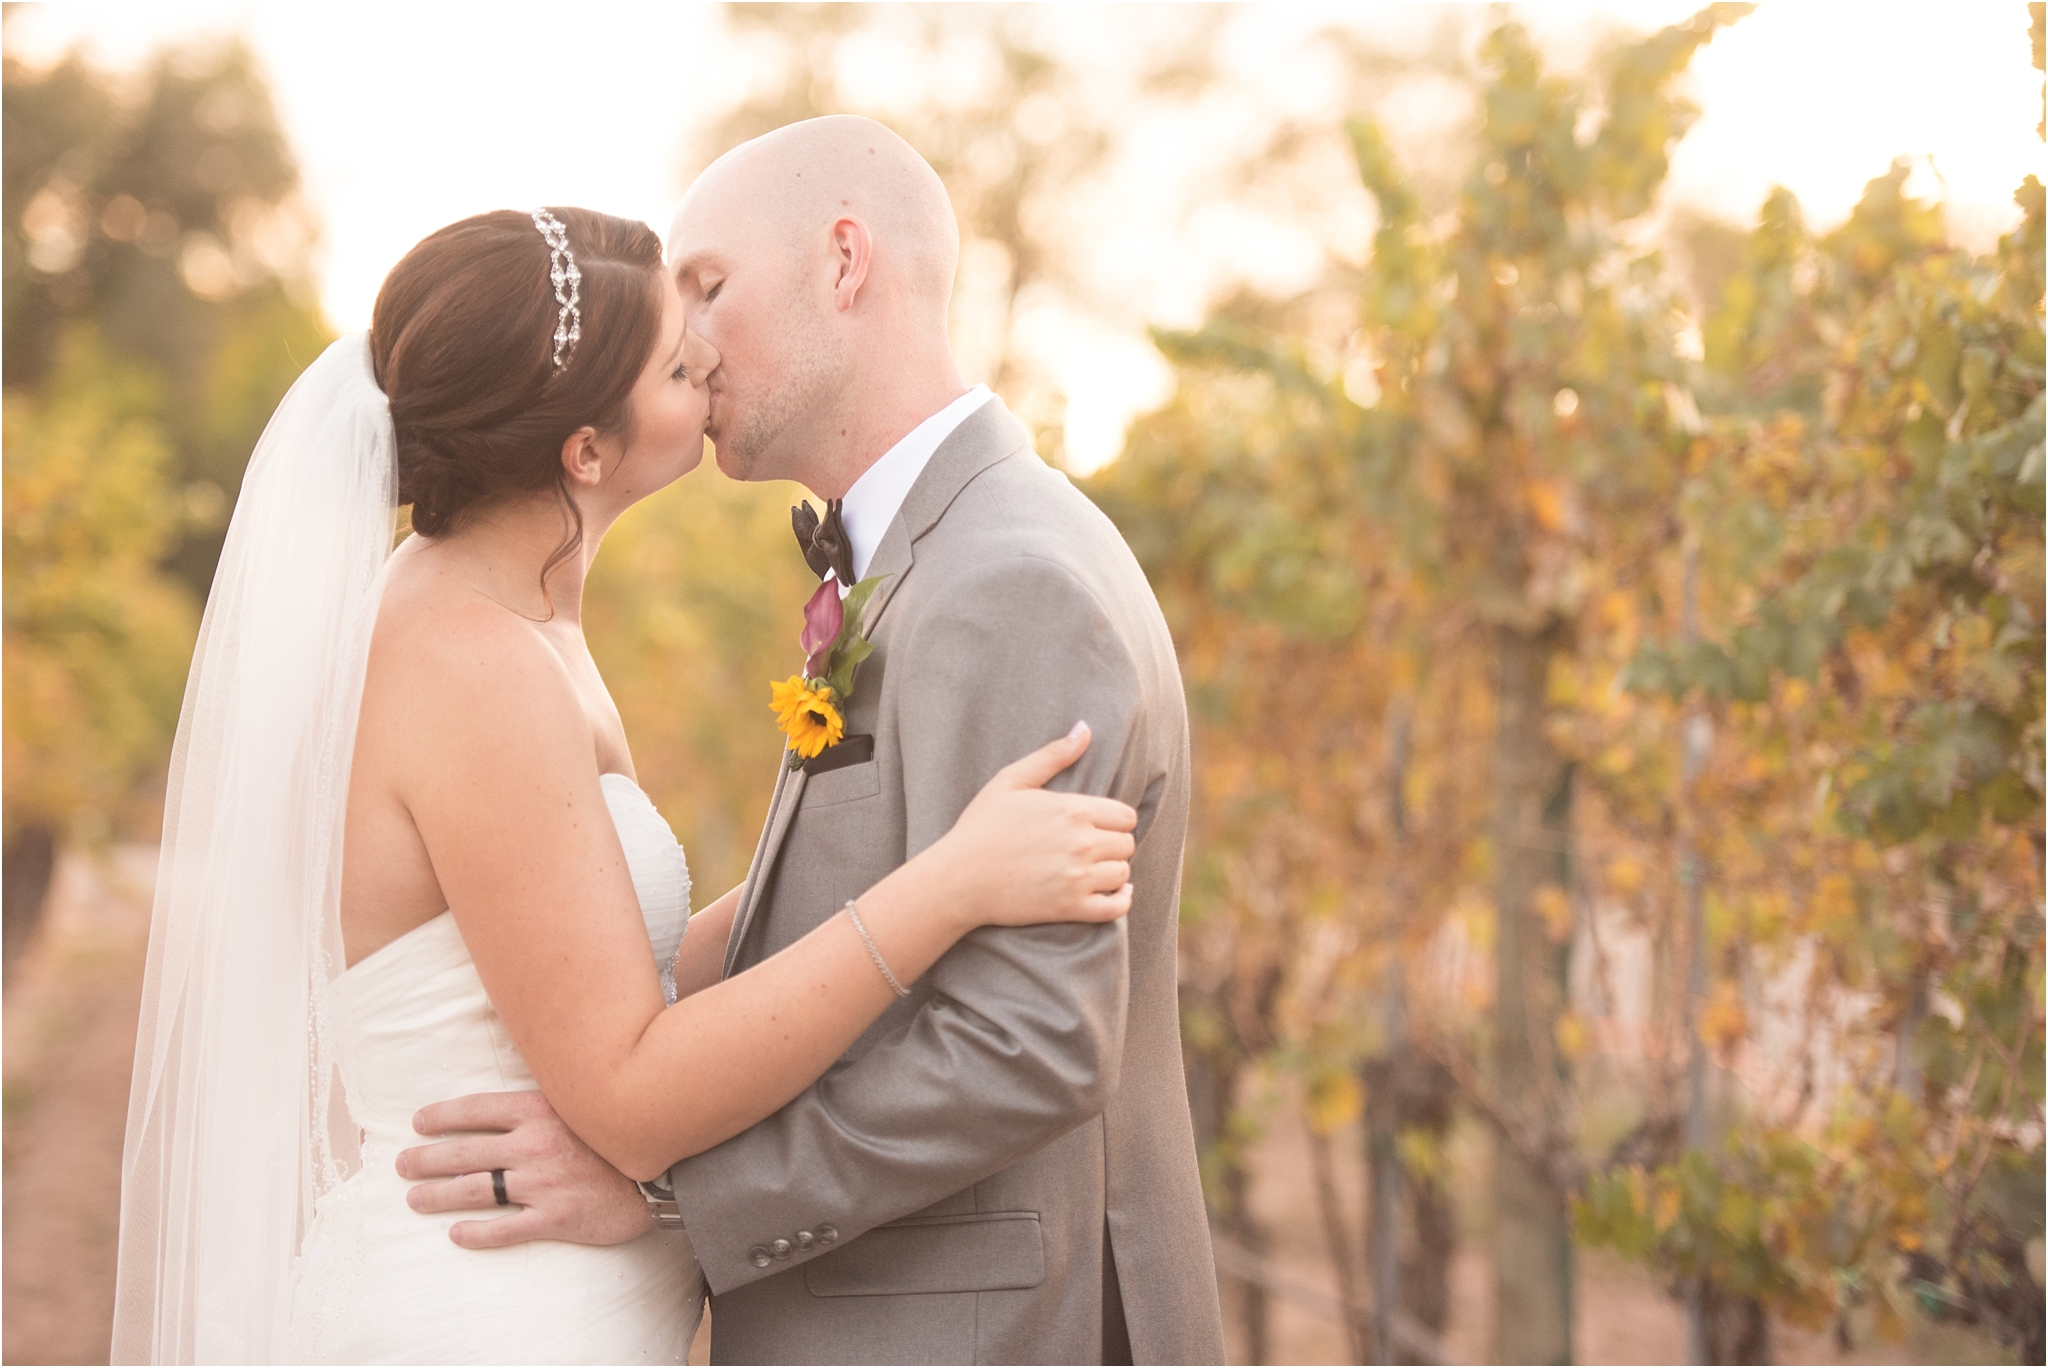 kayla kitts photography - albuquerque wedding photographer - orange september - cjohnson makeup_0047.jpg